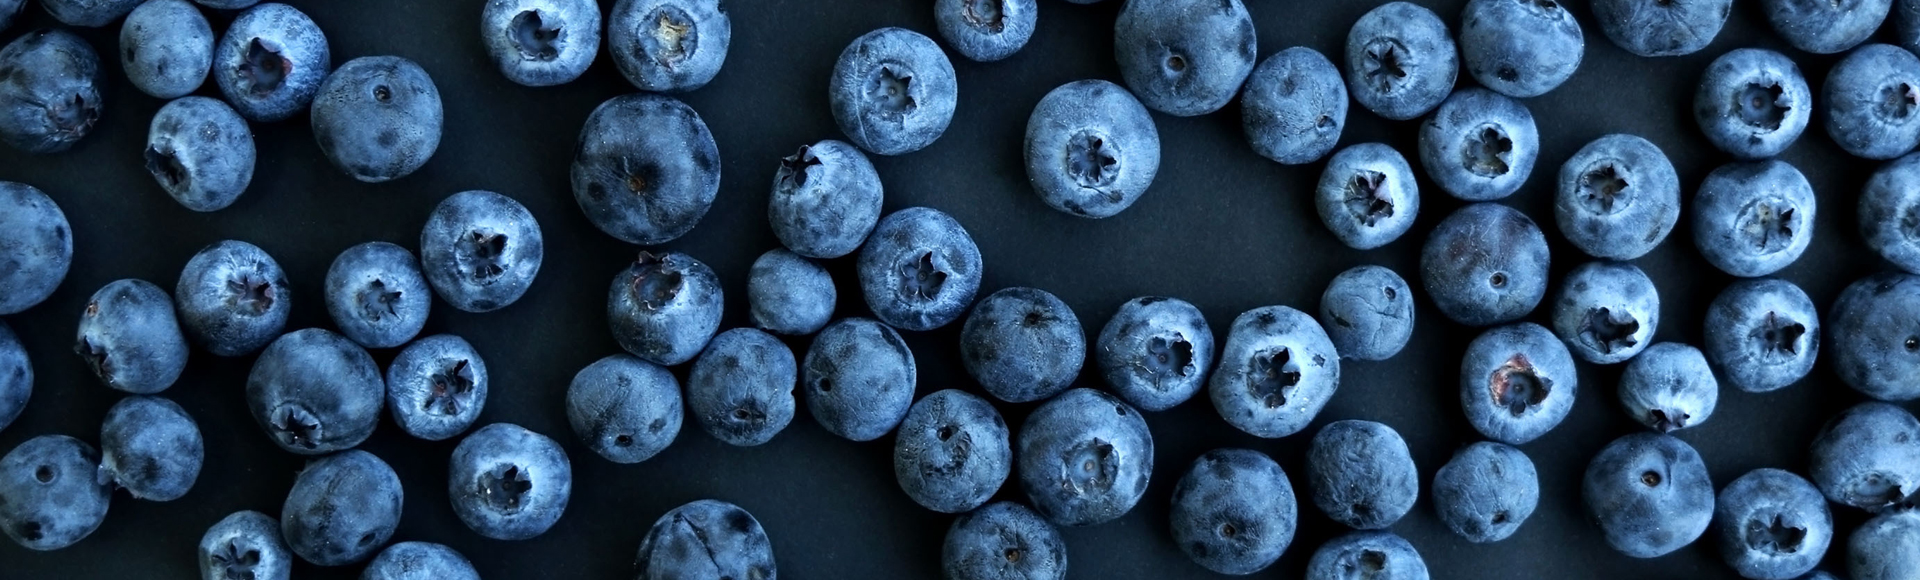 Antioxidant and vitamin-packed snack of blueberries perfect for beating the mid-day slump.